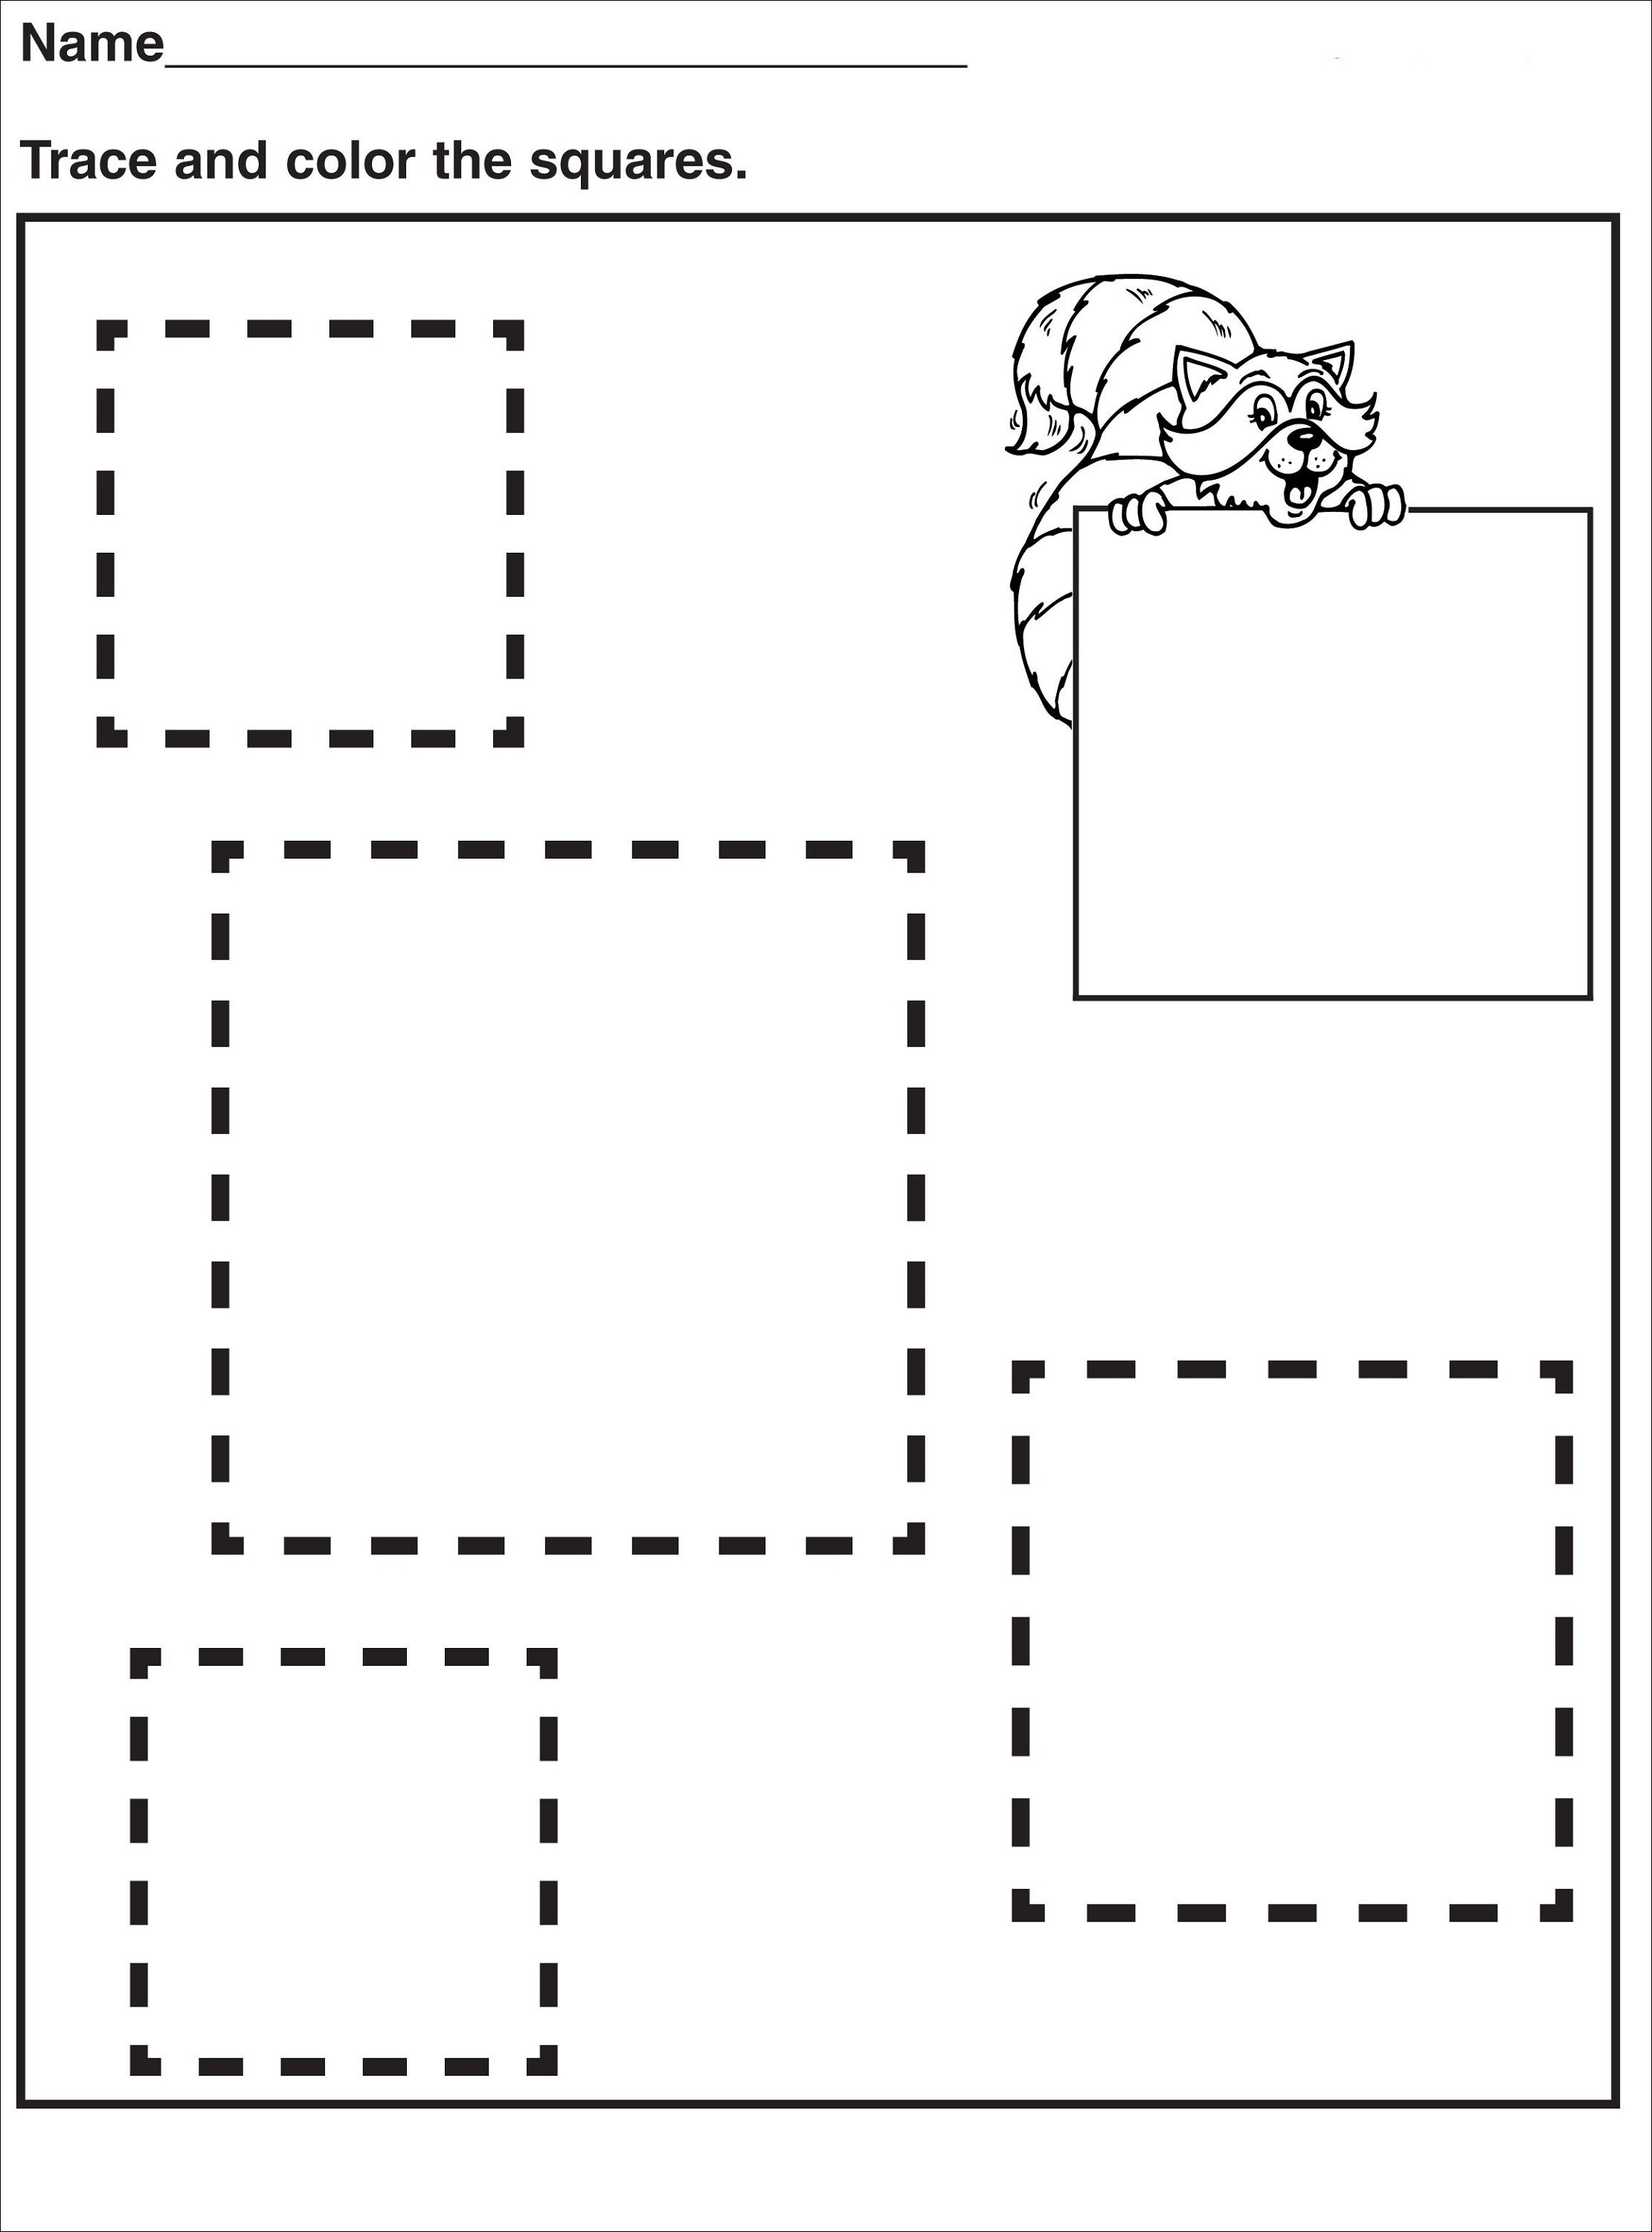 Pin On Tracing Pages